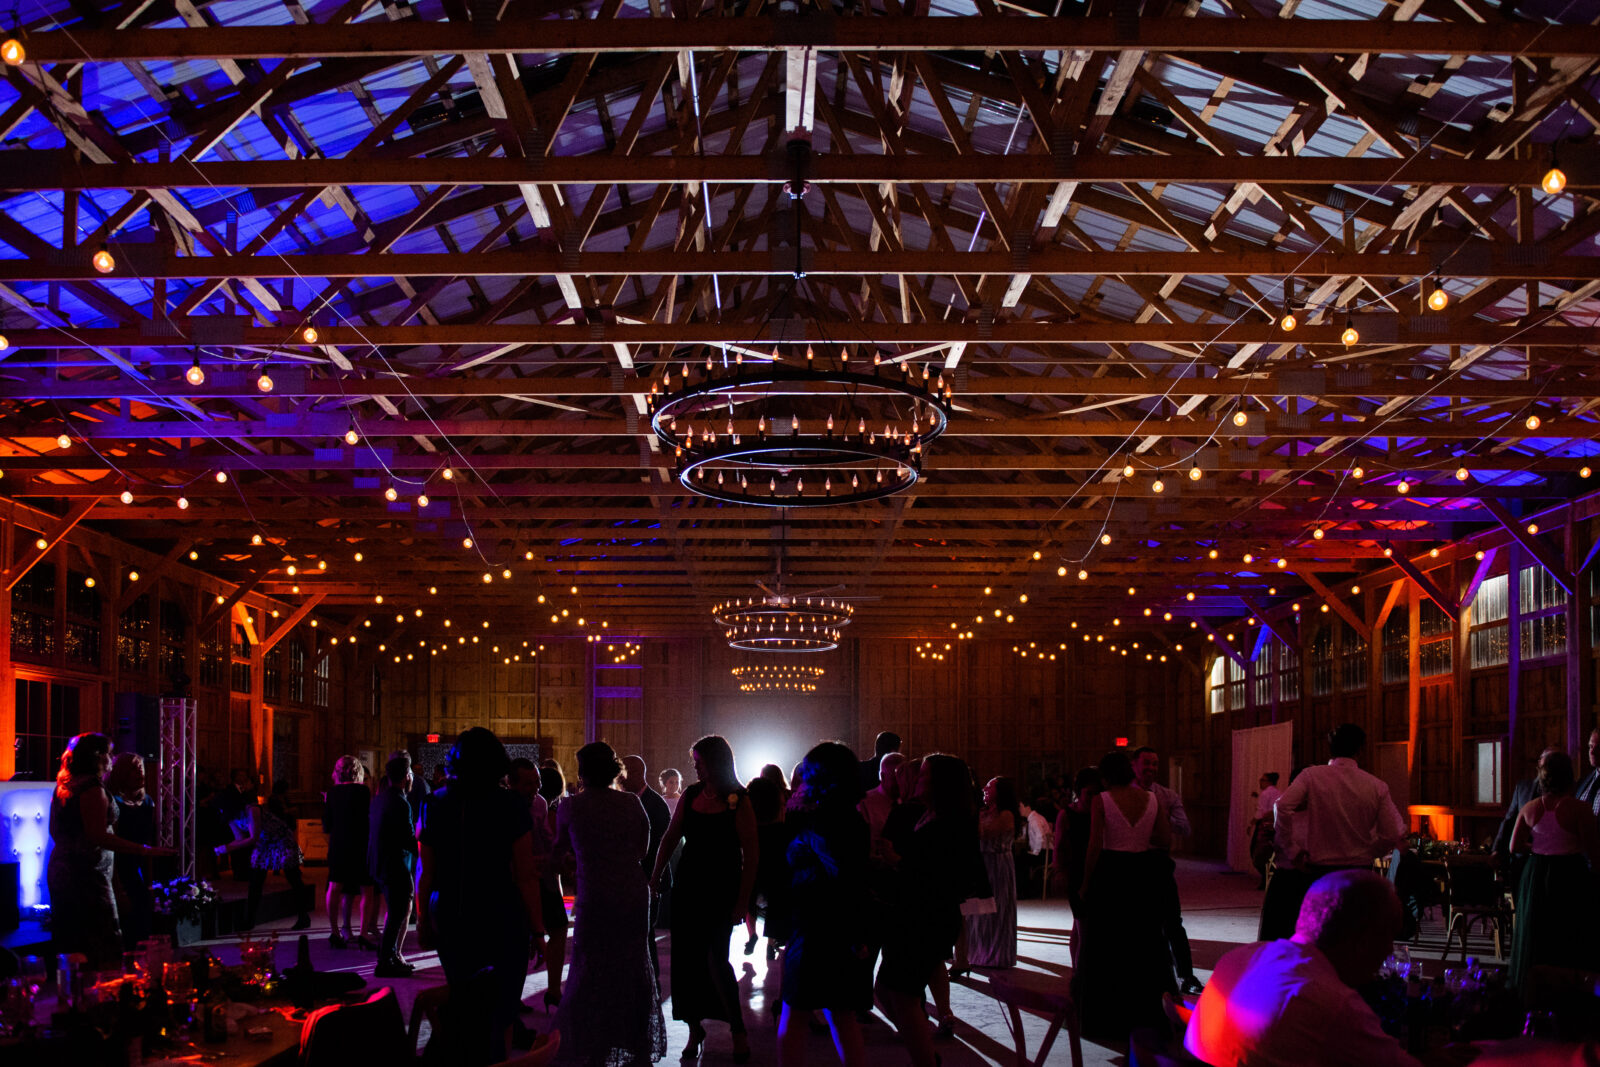 Wide angle of a moody wedding reception with blue, red, and purple lighting filling the room